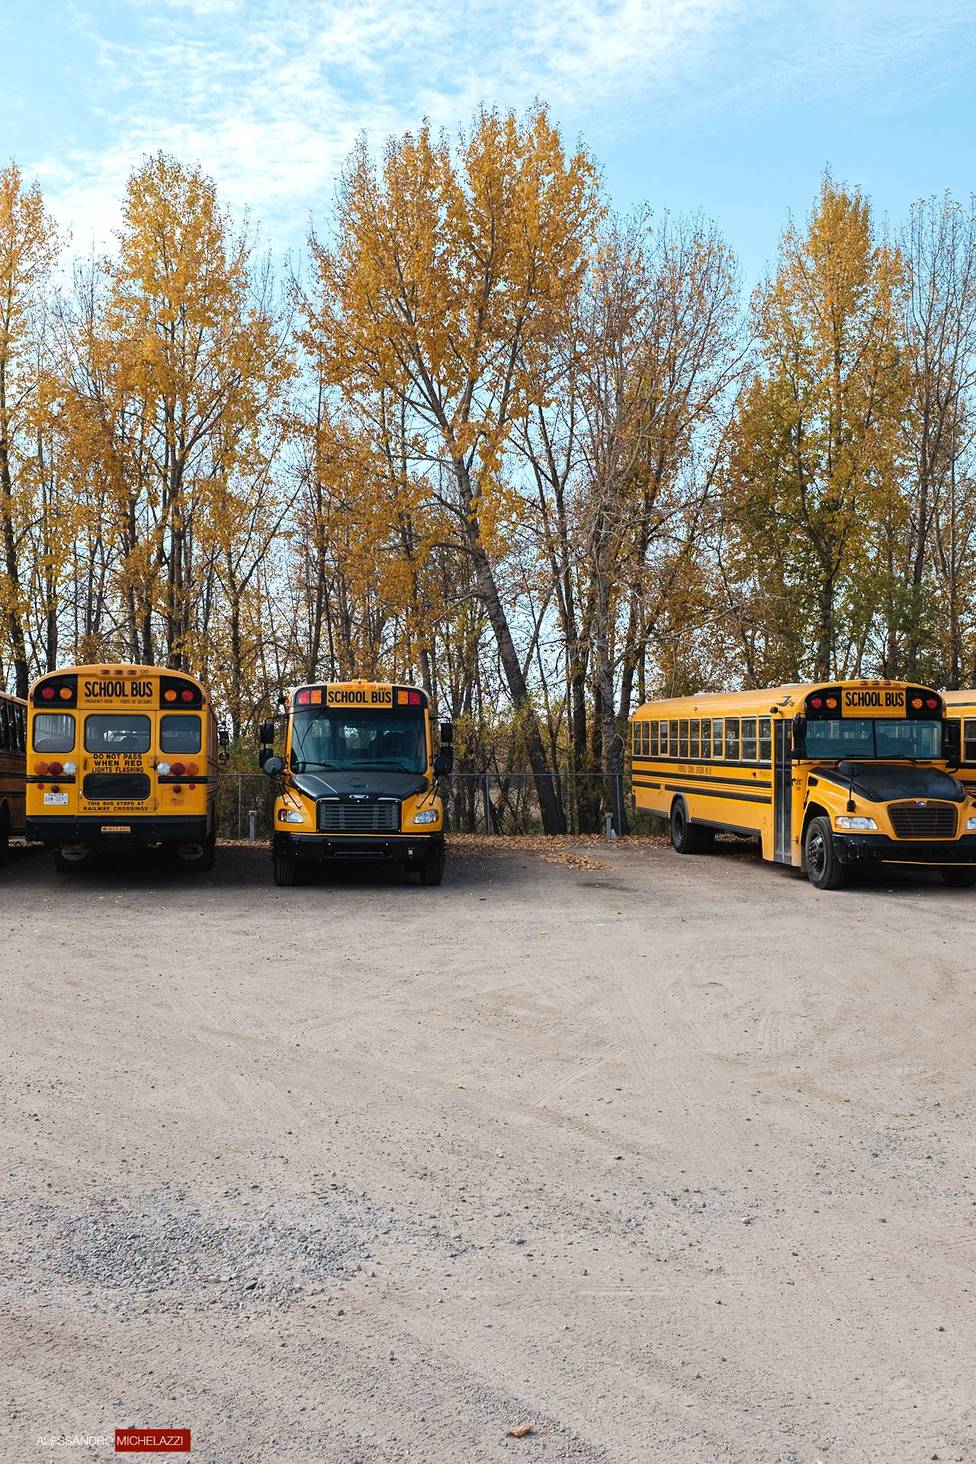 Yellow buses in Calgary, Canada